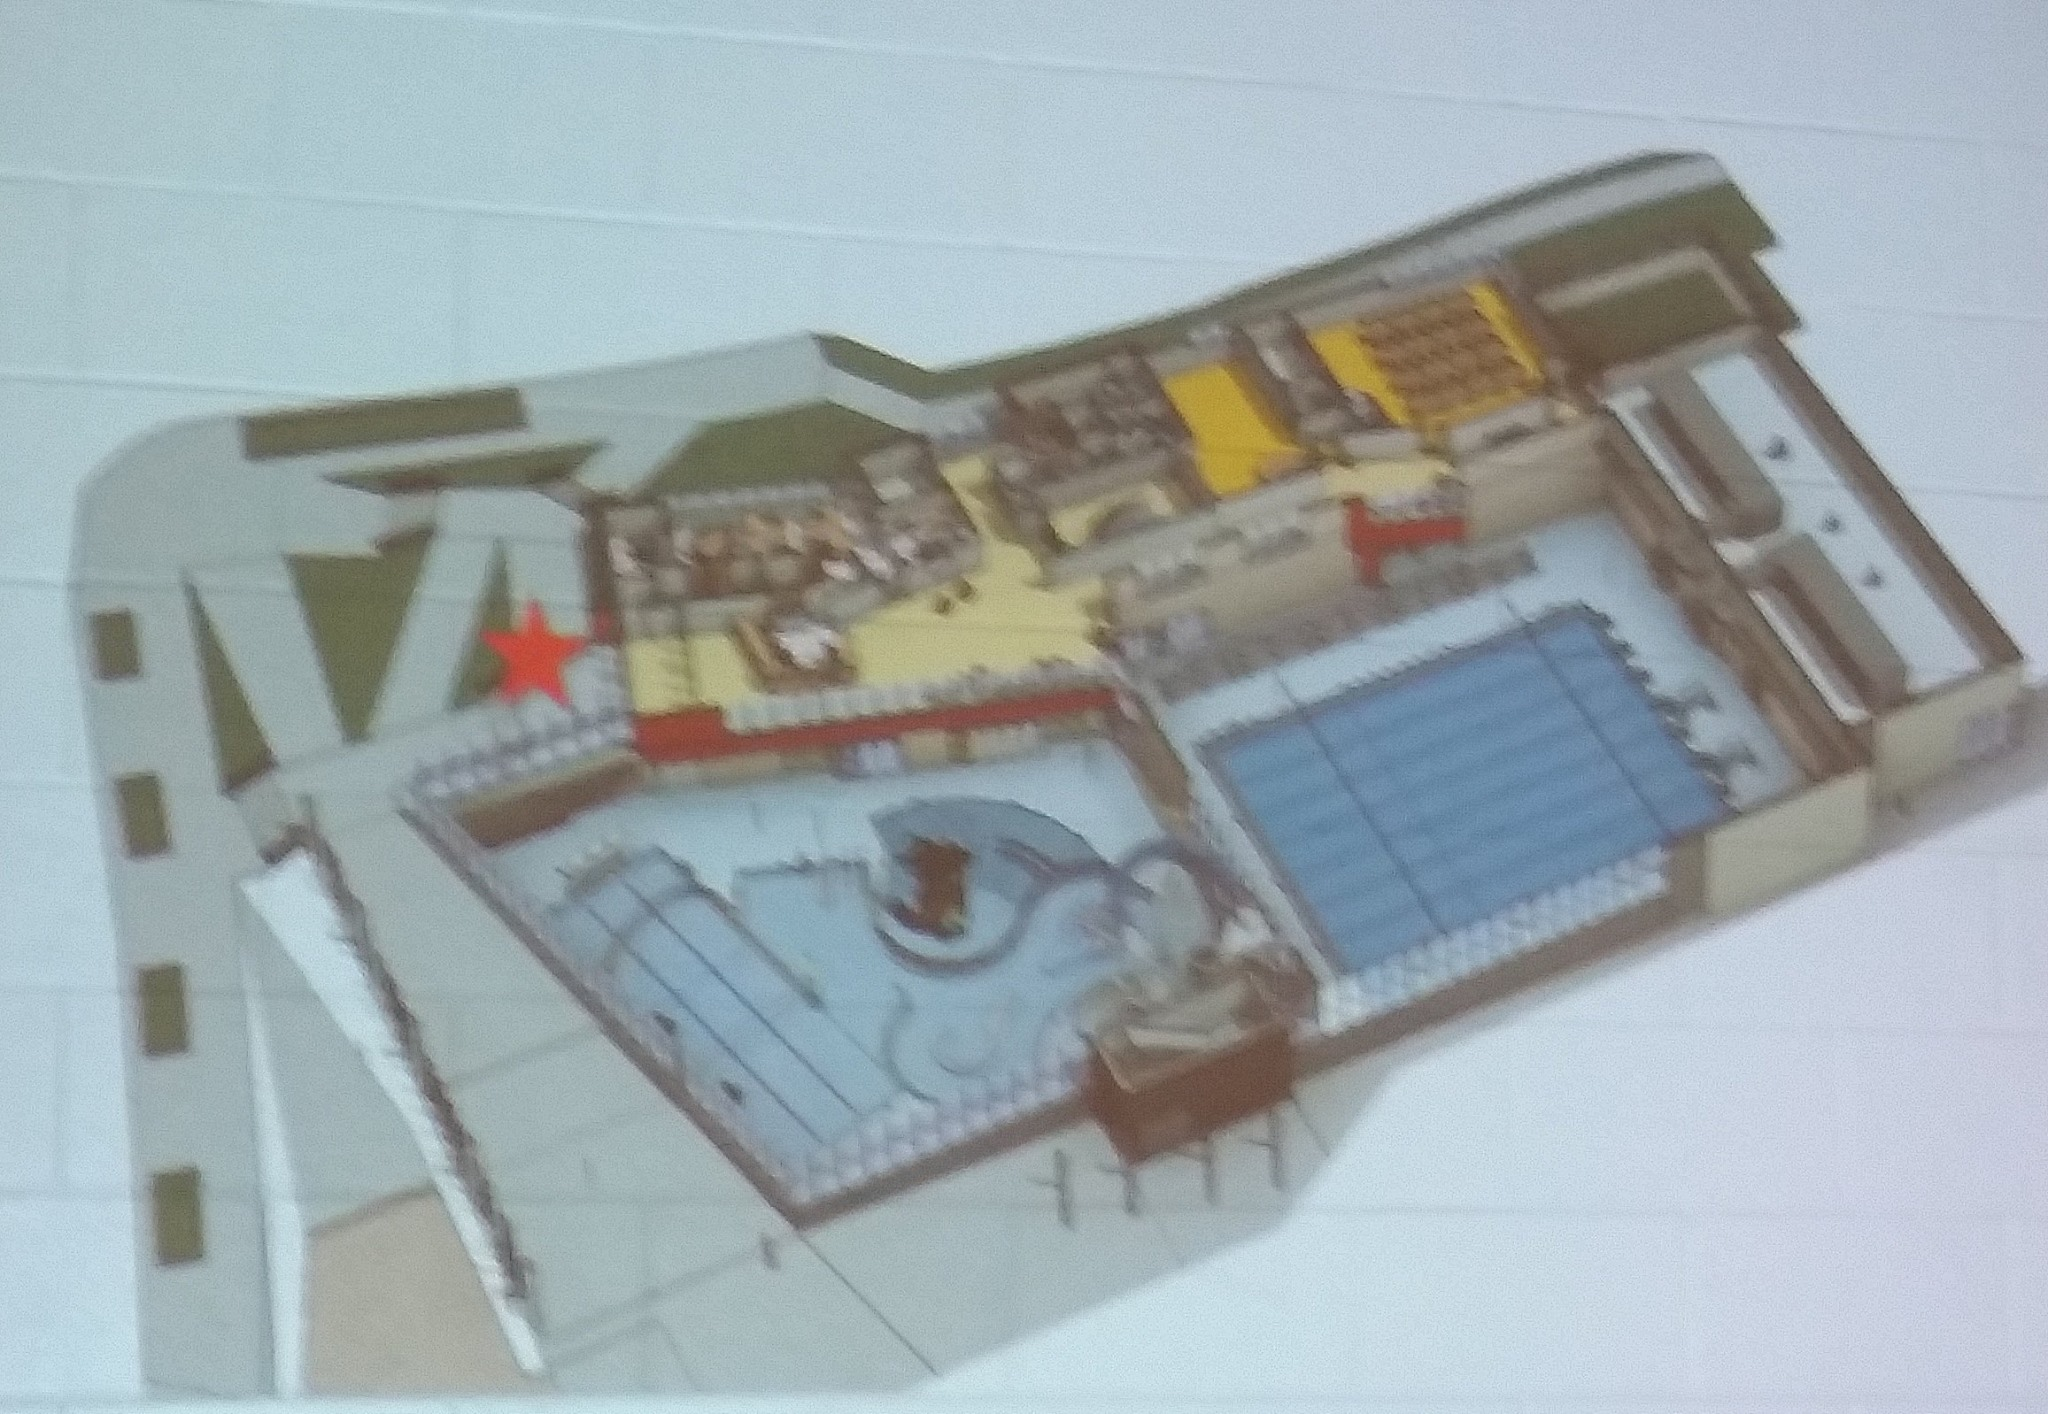 Entrance level, pools are a level down.